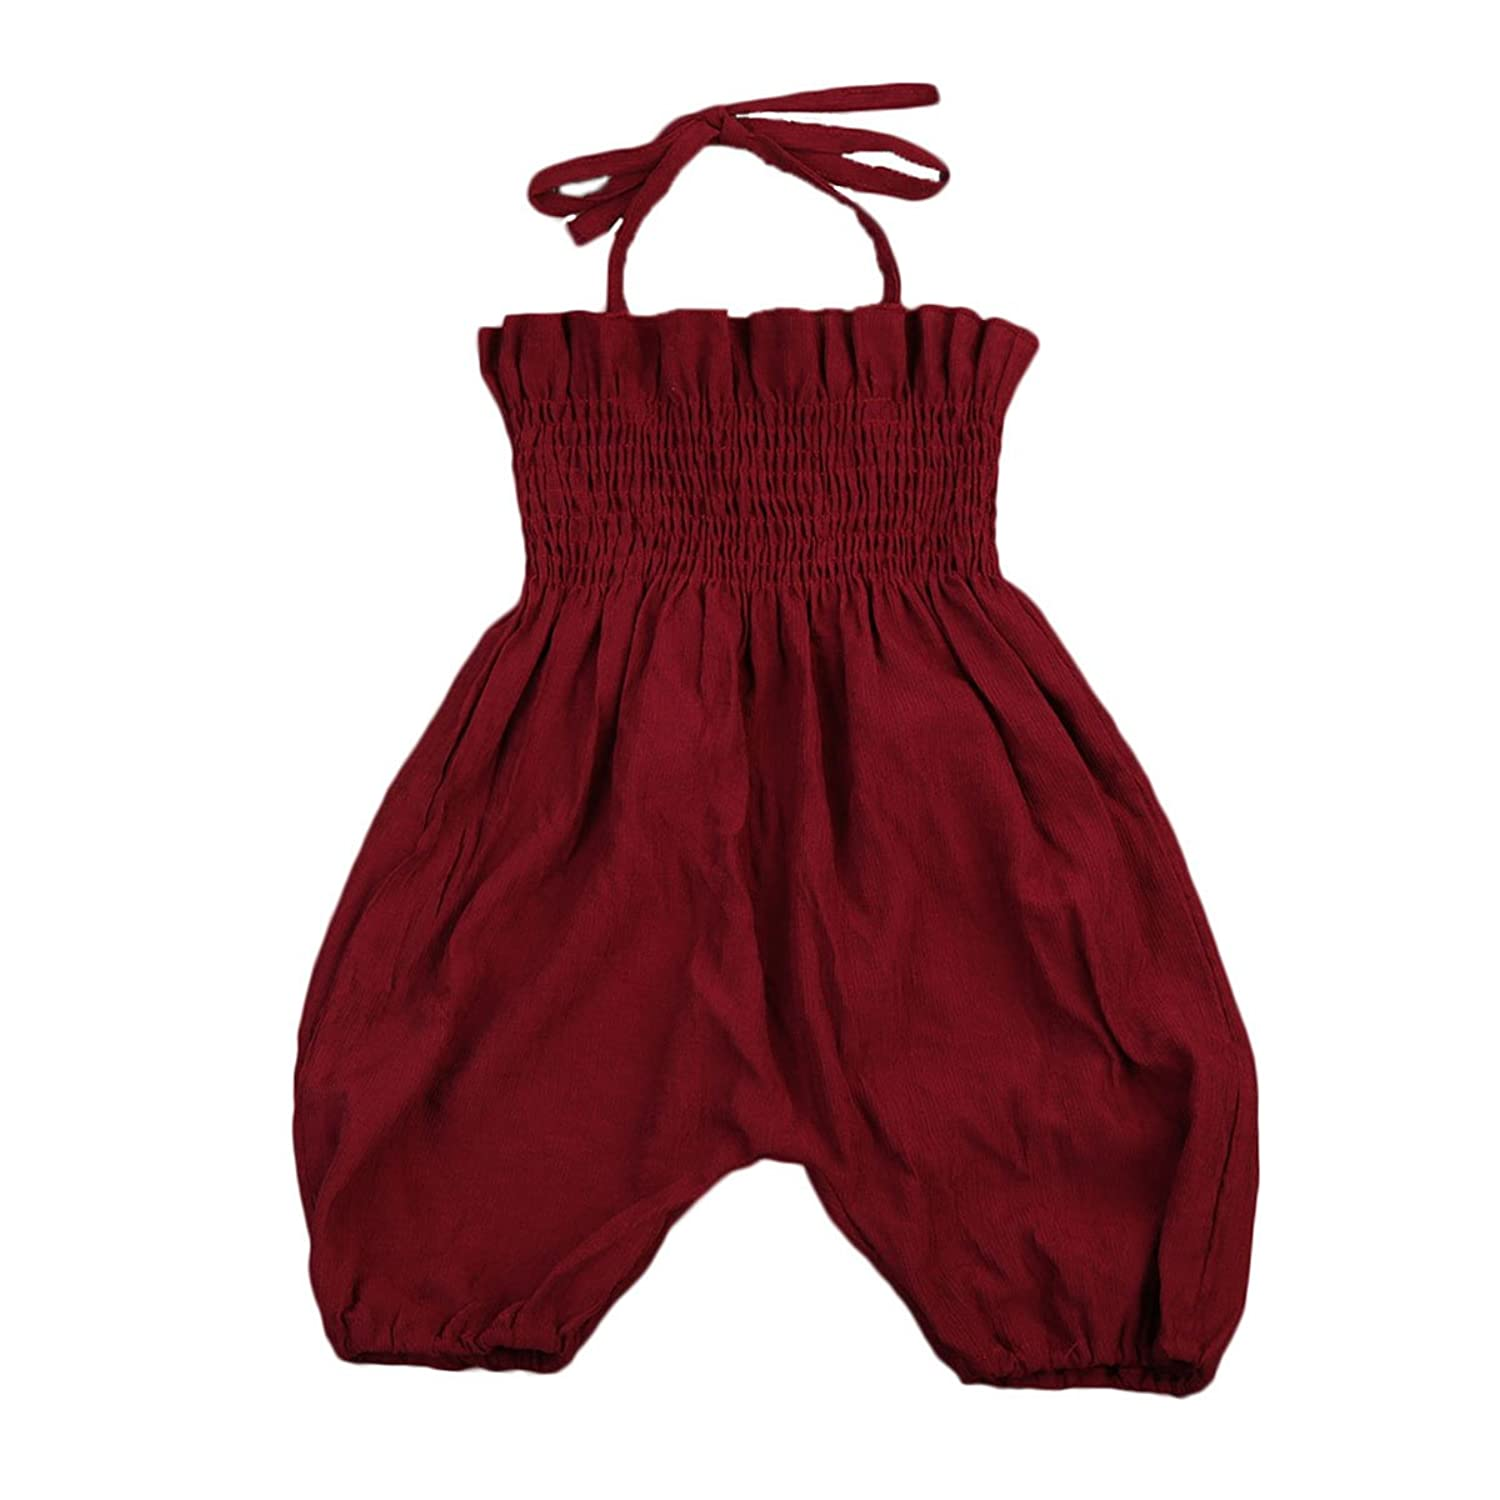 Bébé fille summer tube top bretelles salopette romper bodysuit pantalon